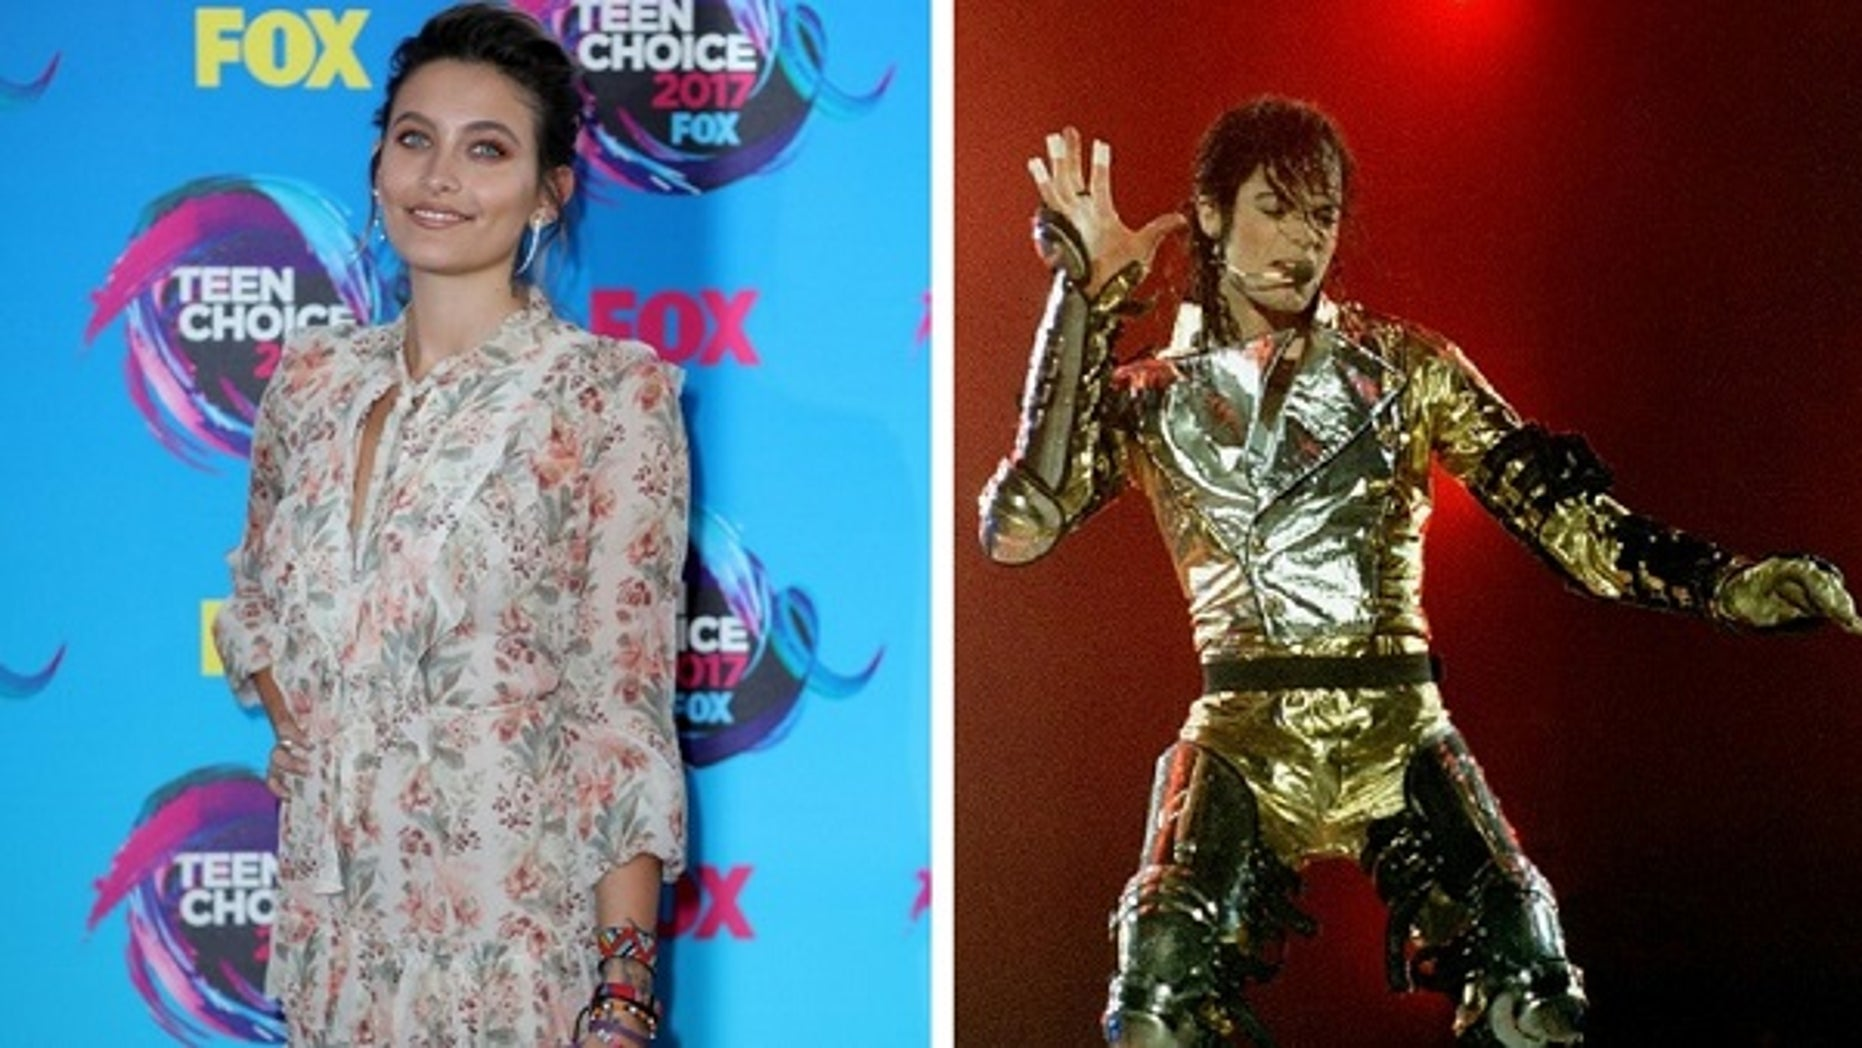 Paris Jackson paid tribute Tuesday to her late father Michael Jackson in a heartfelt Instagram post wishing him a happy birthday.